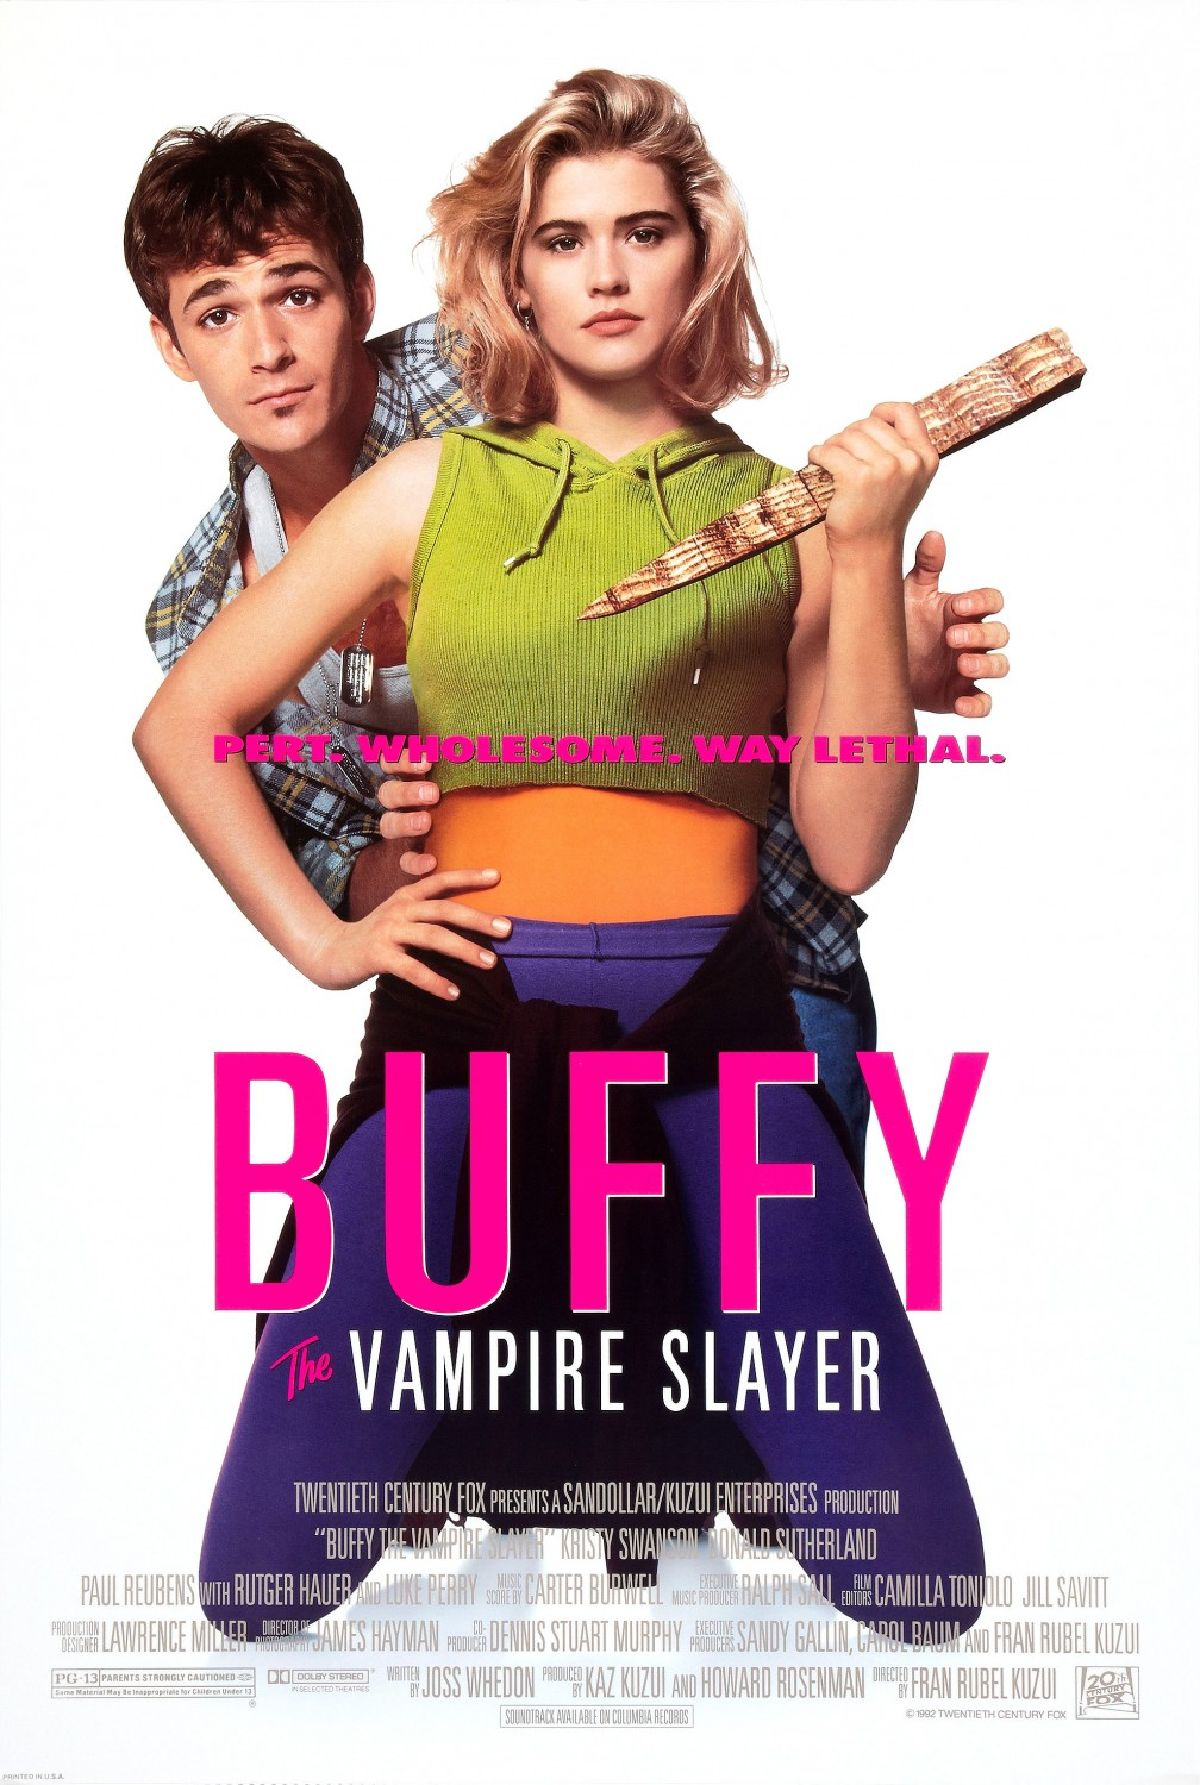 'Buffy the Vampire Slayer' movie poster